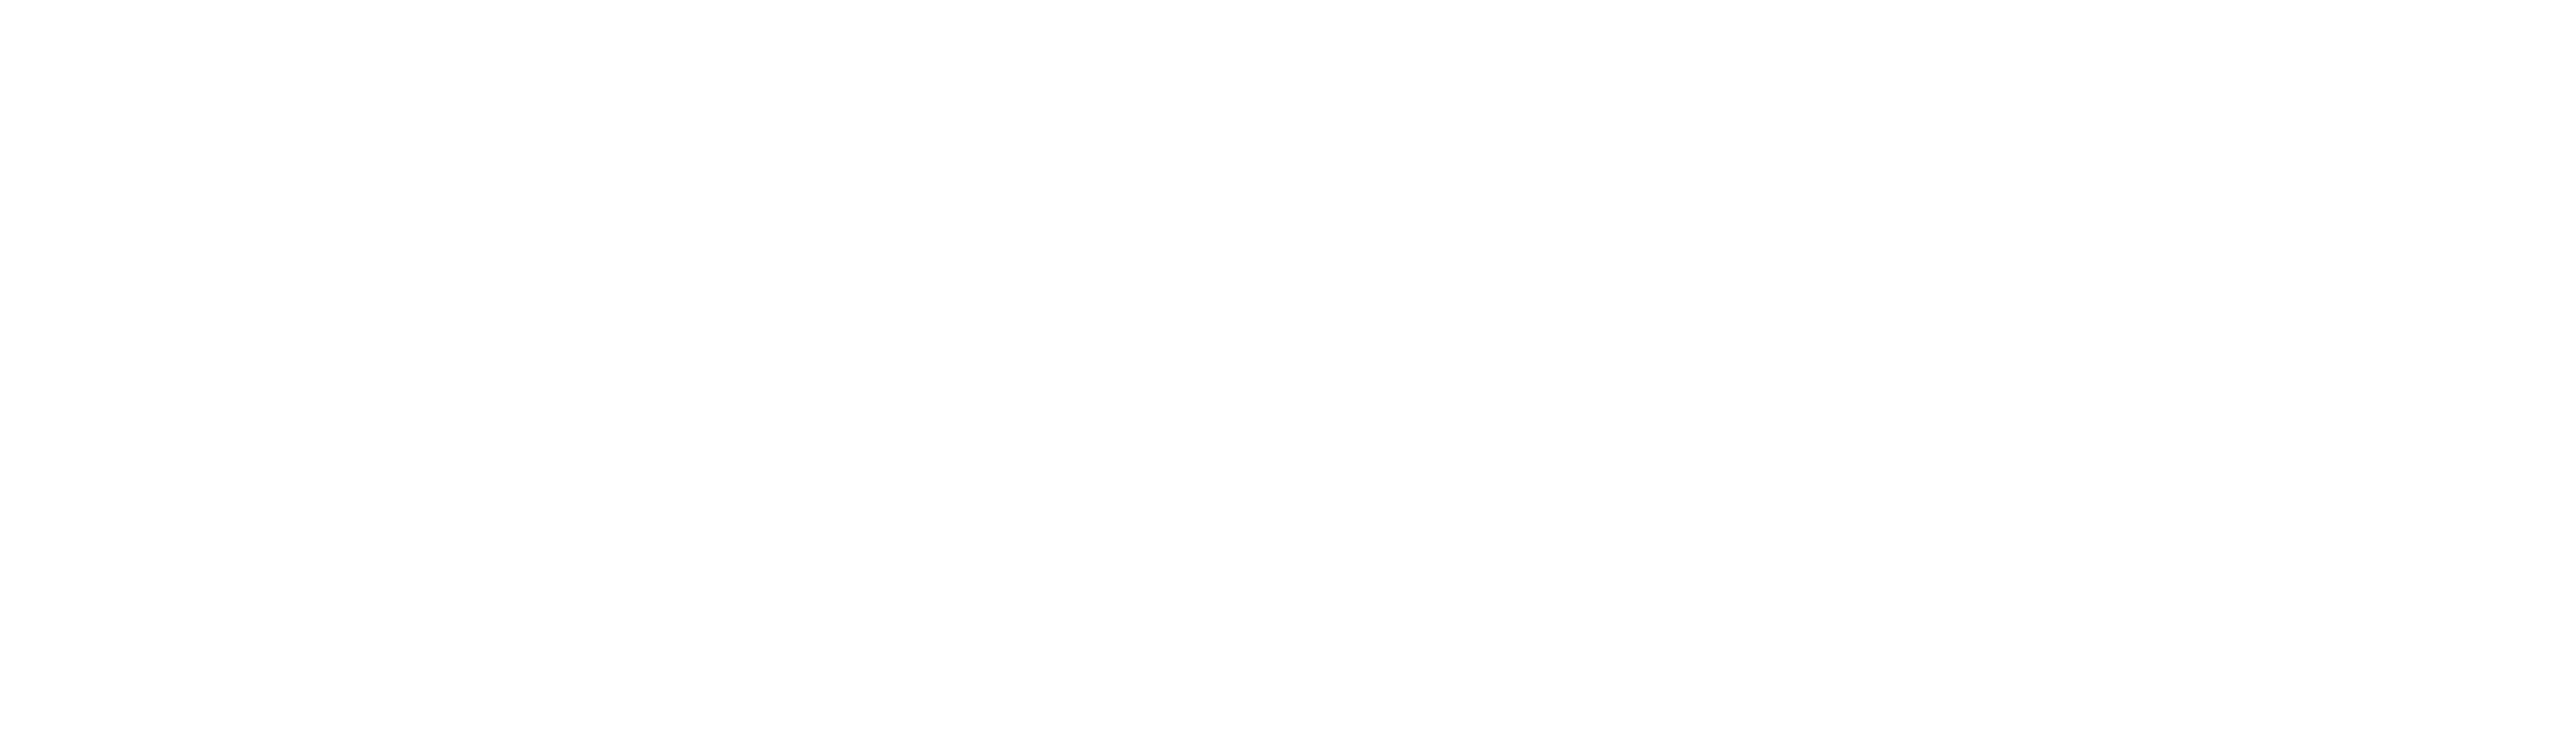 Logo1-degroof-petercam